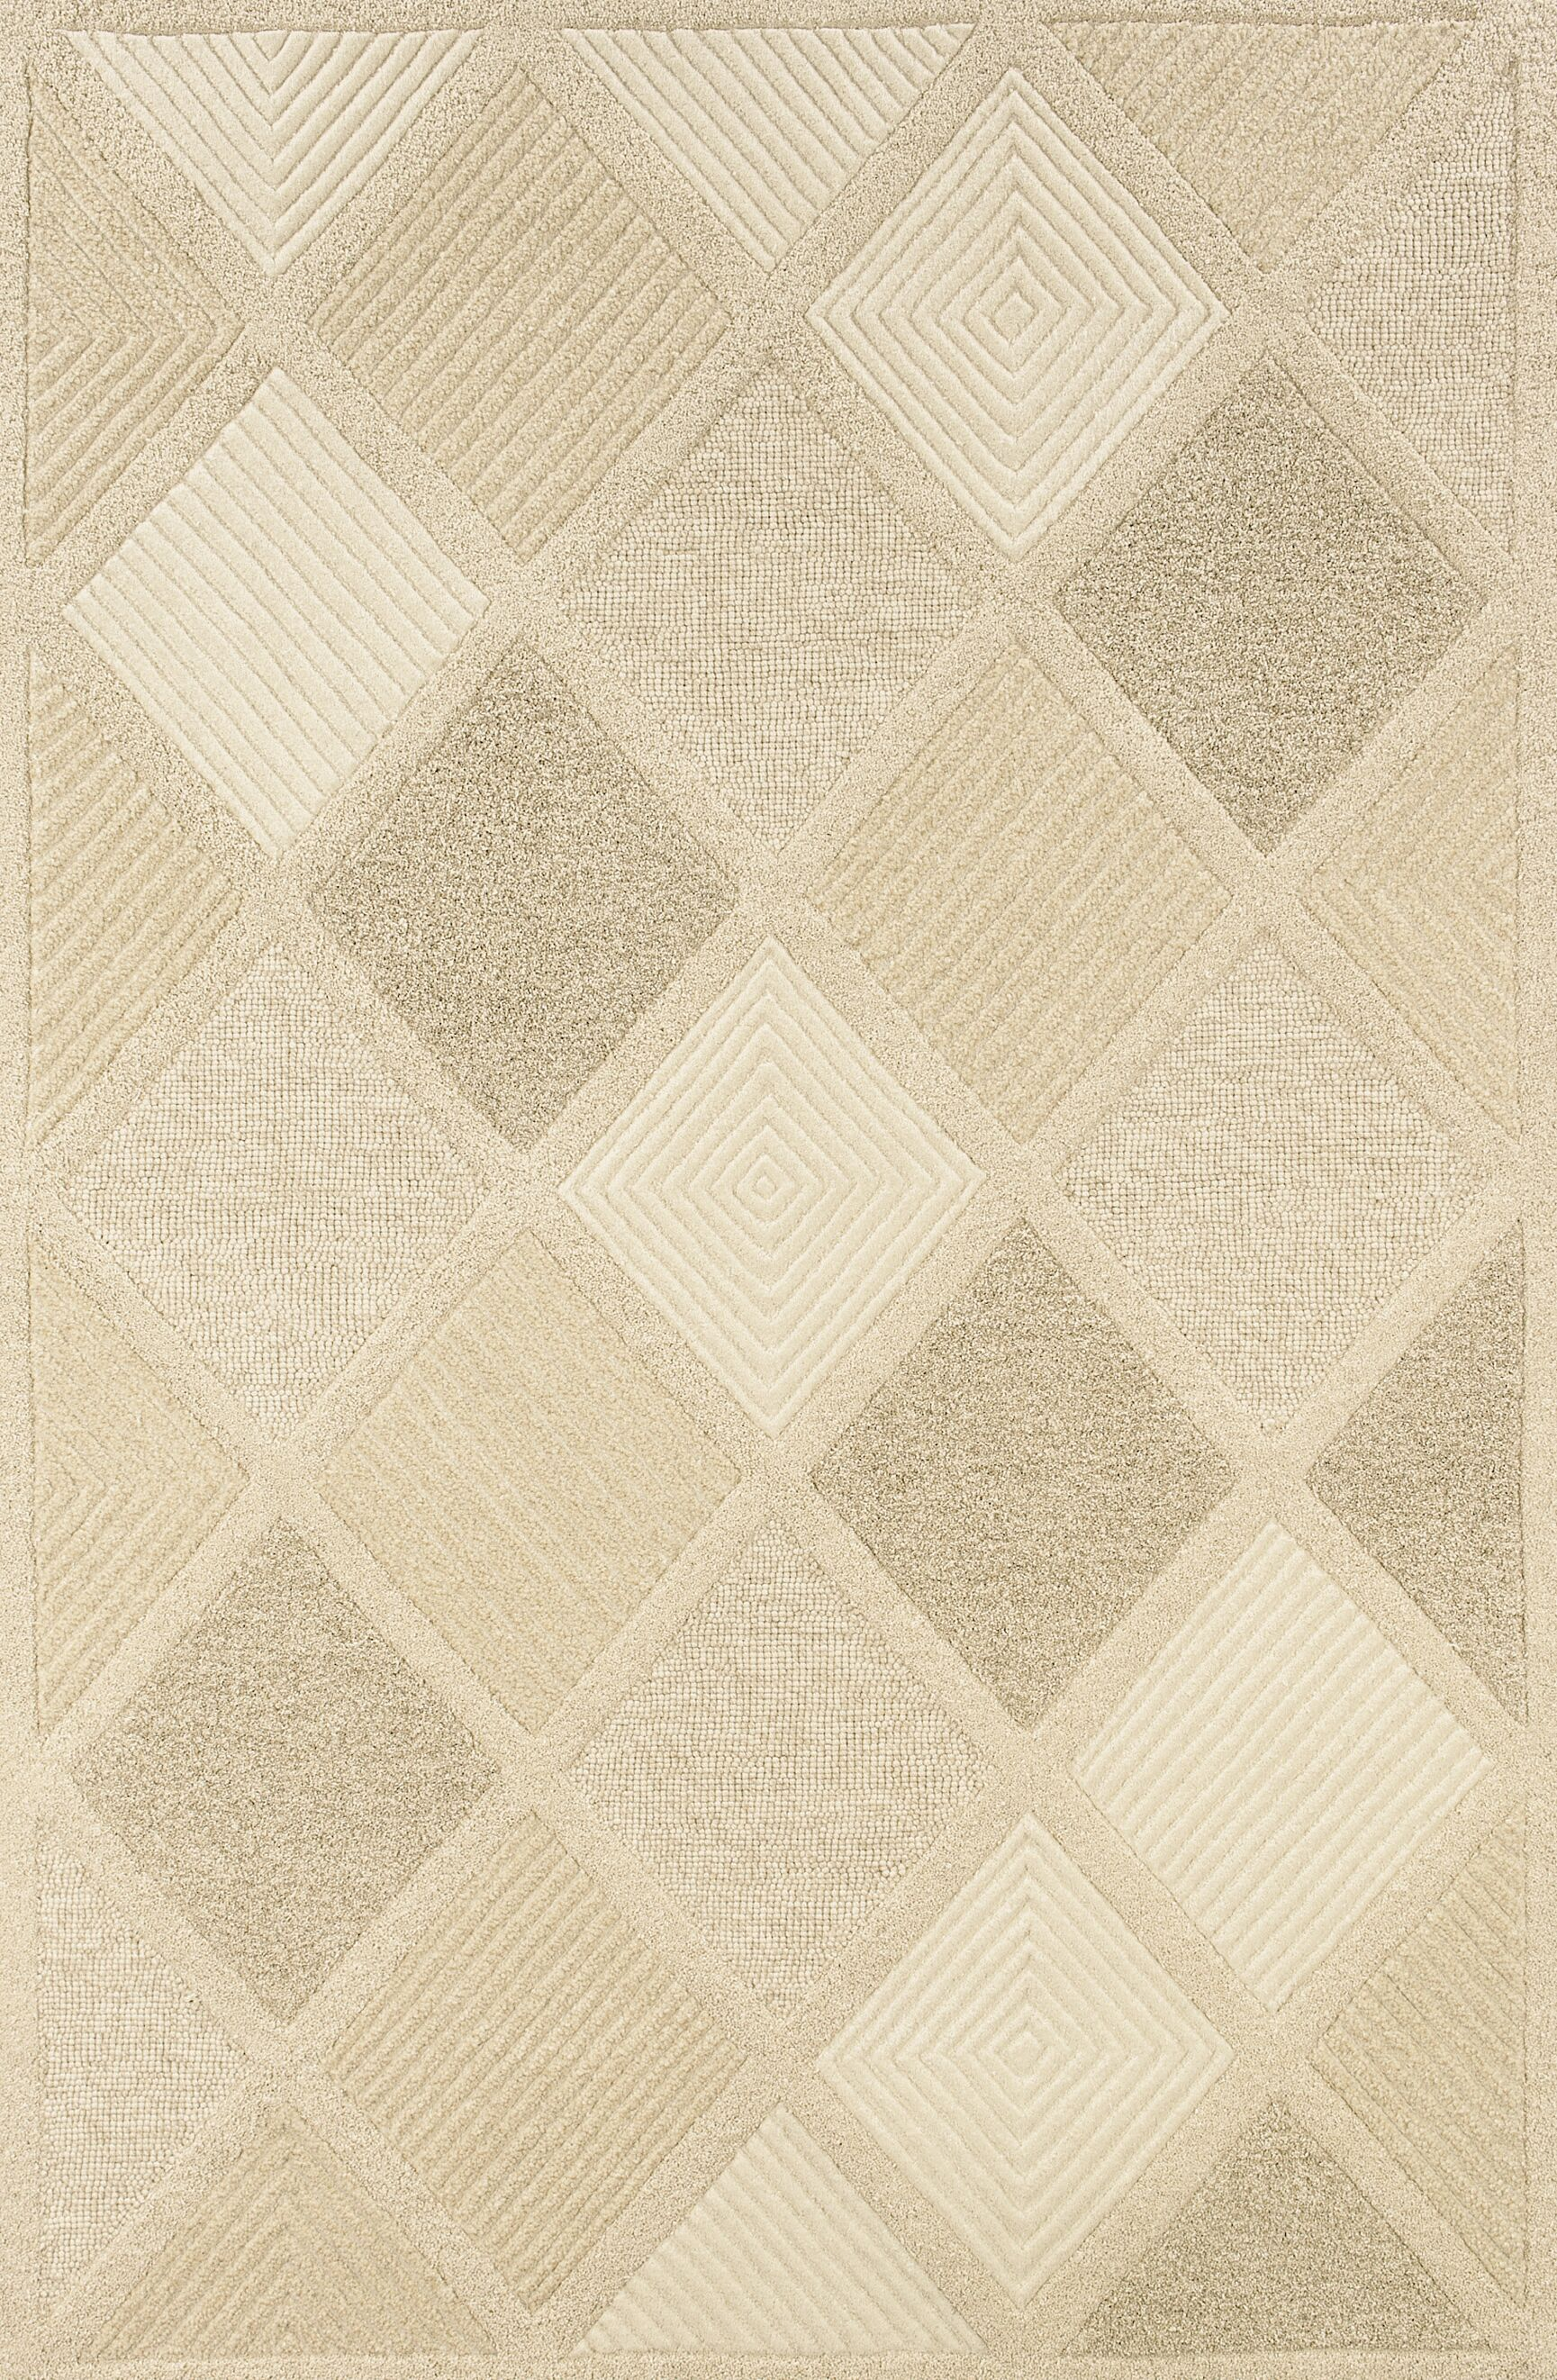 Argyle Hand Woven Wool Beige Area Rug Rug Size: Rectangle 3'6